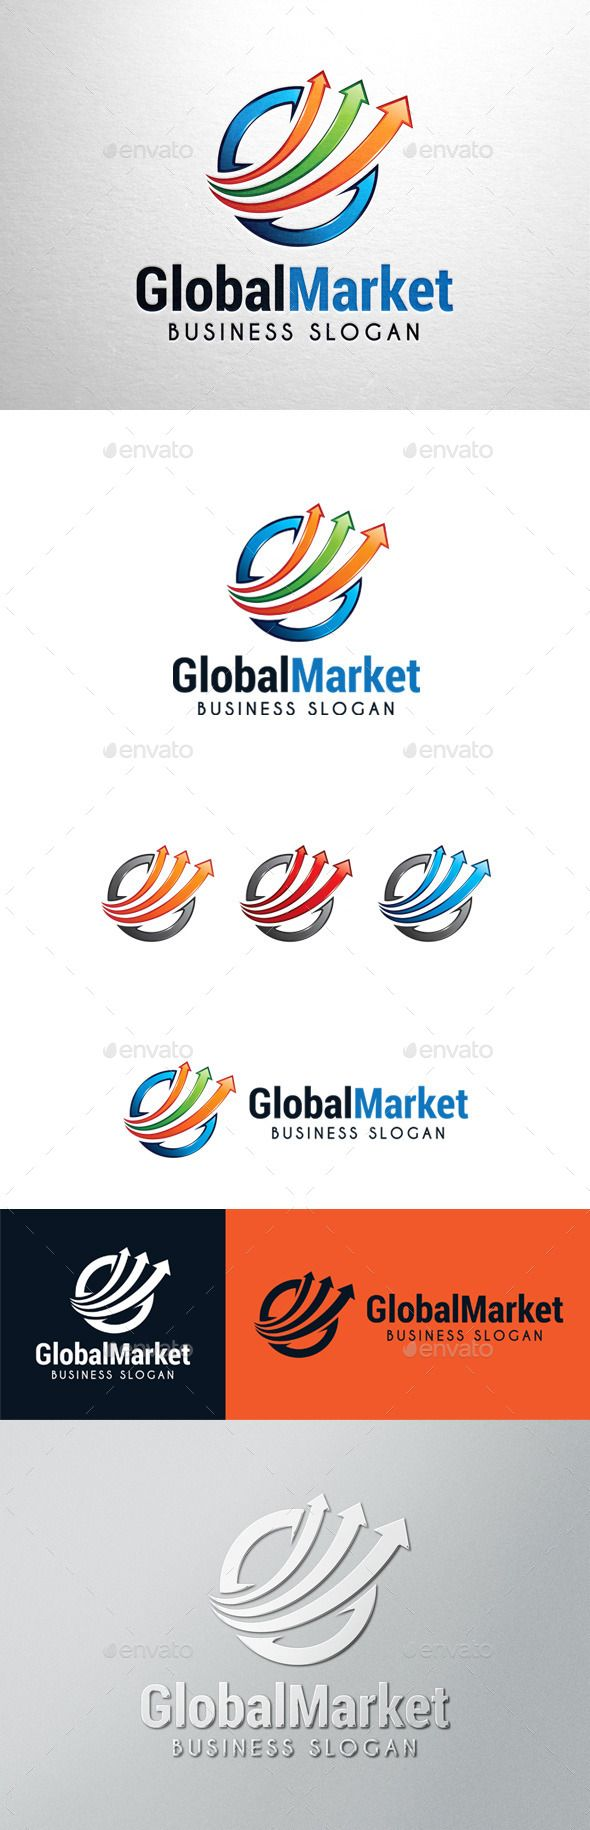 Global Market Graph Logo Template Vector EPS, AI. Download here: http://graphicriver.net/item/global-market-graph-logo/11392848?ref=ksioks